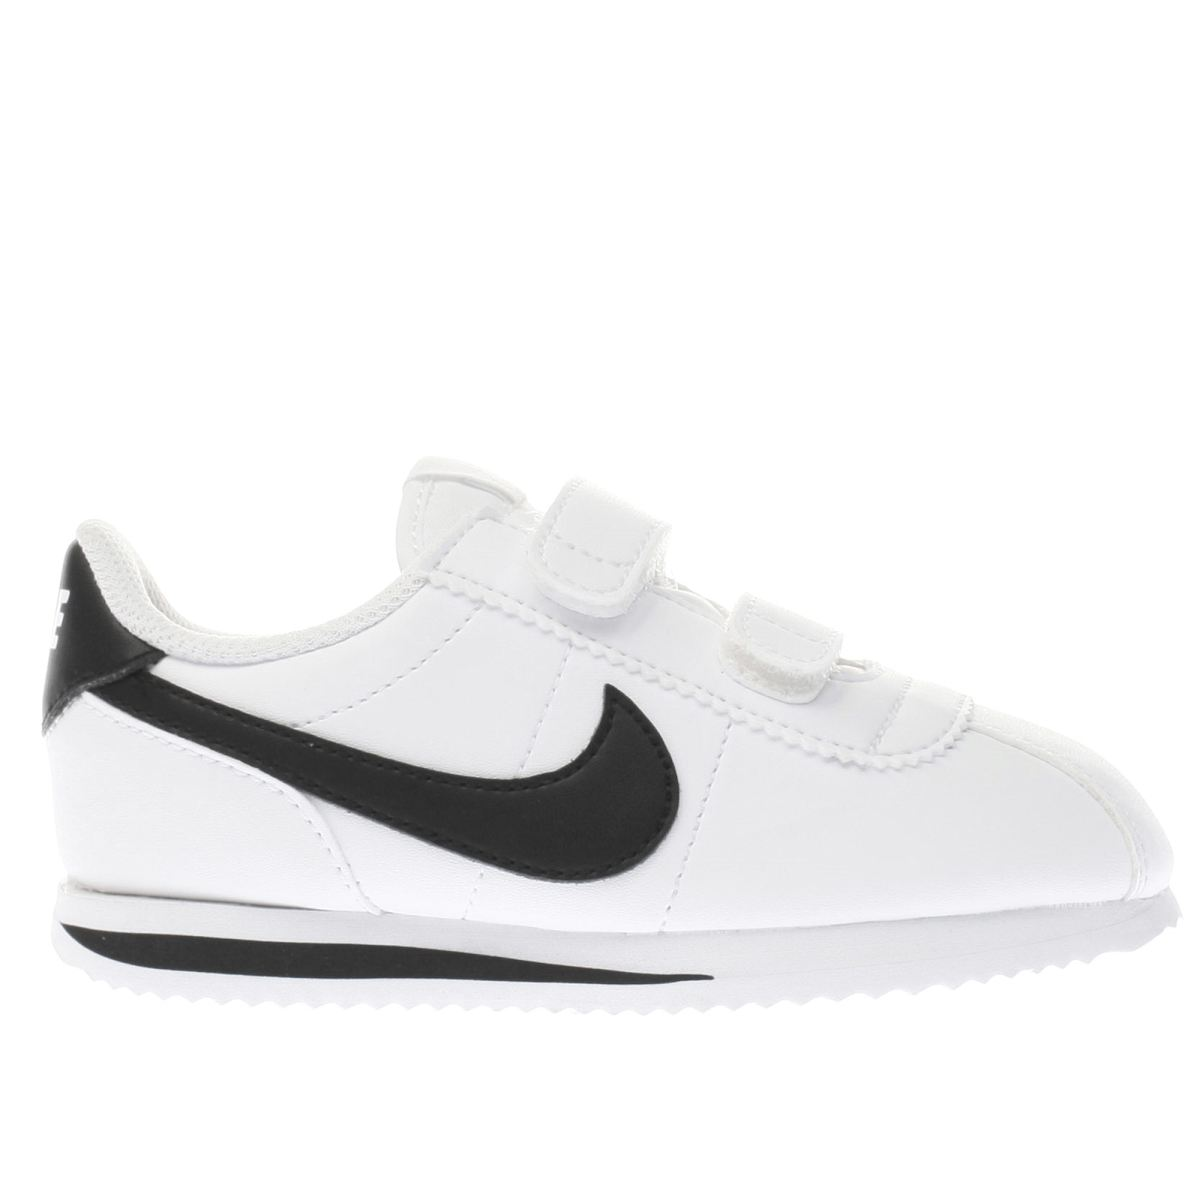 nike white & black cortez basic Toddler Trainers